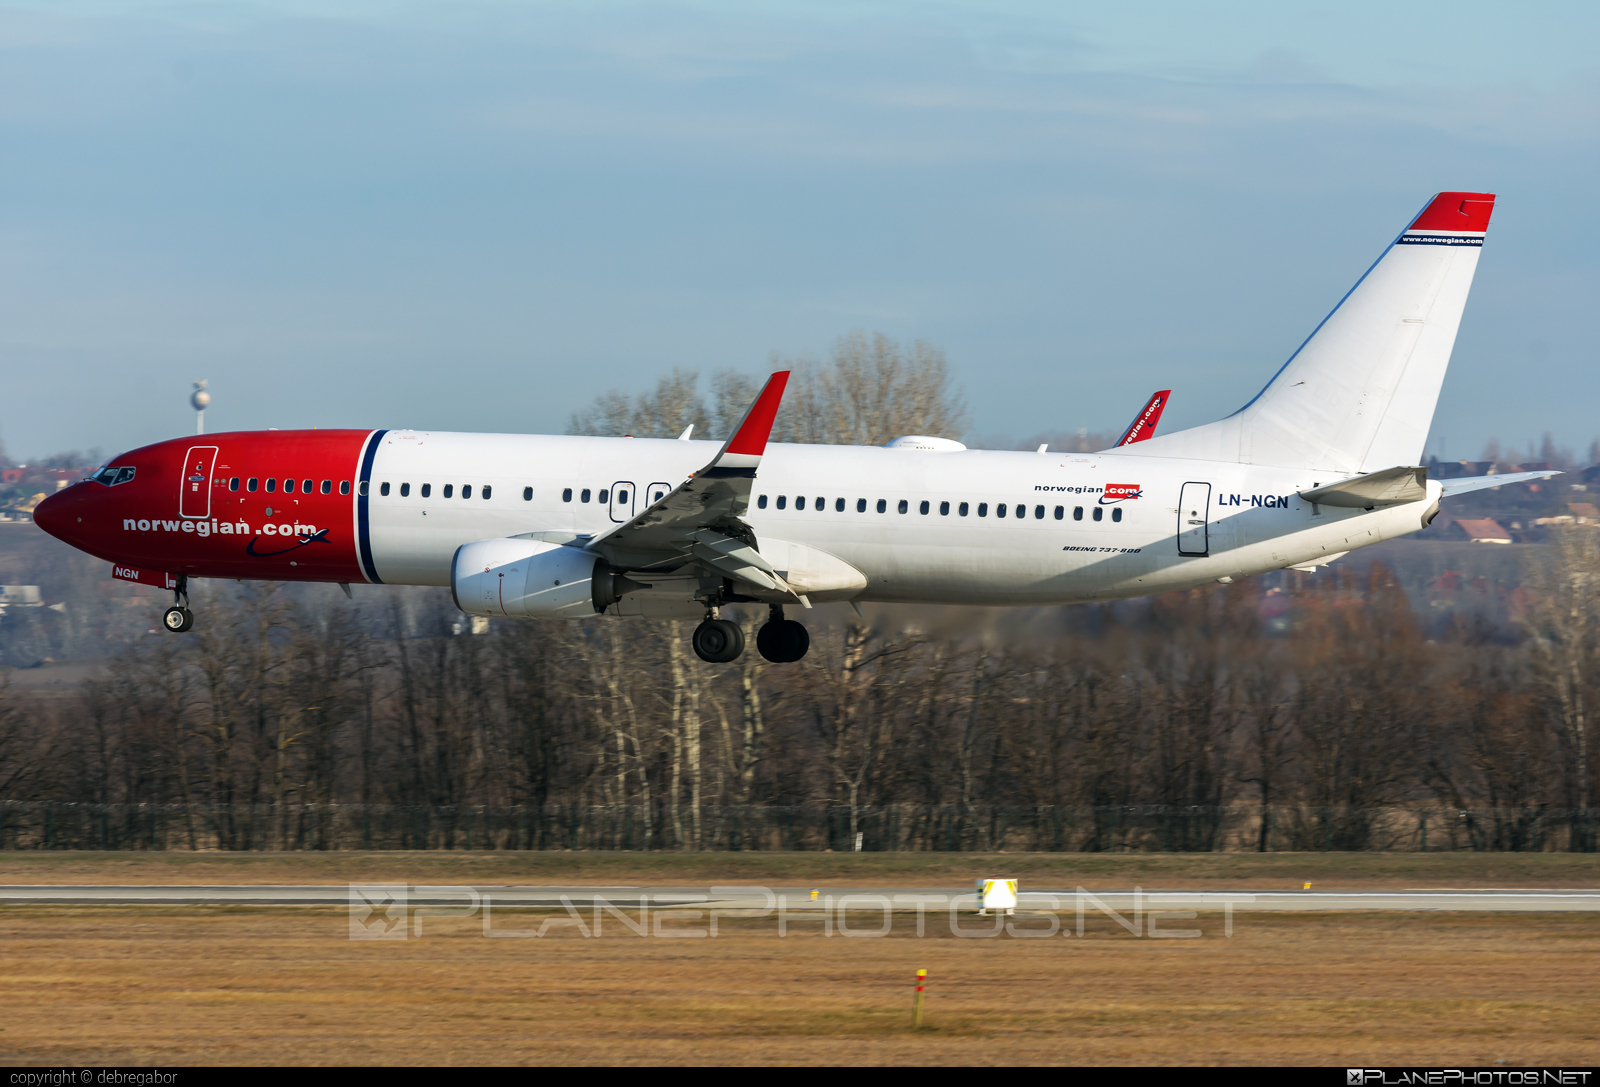 Boeing 737-800 - LN-NGN operated by Norwegian Air Shuttle #b737 #b737nextgen #b737ng #boeing #boeing737 #norwegian #norwegianair #norwegianairshuttle